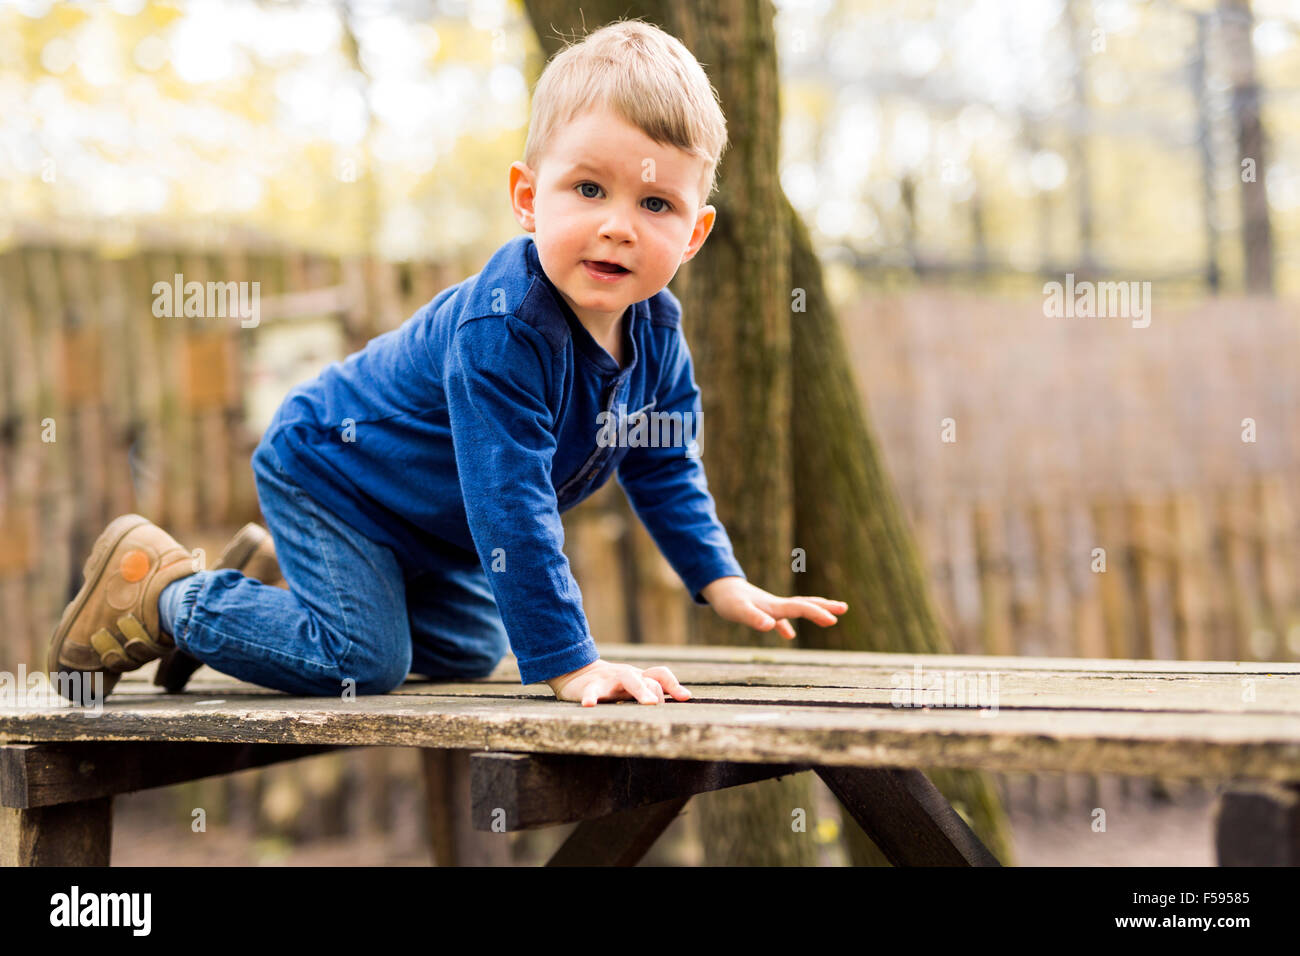 Handsome little boy in the park - Stock Image